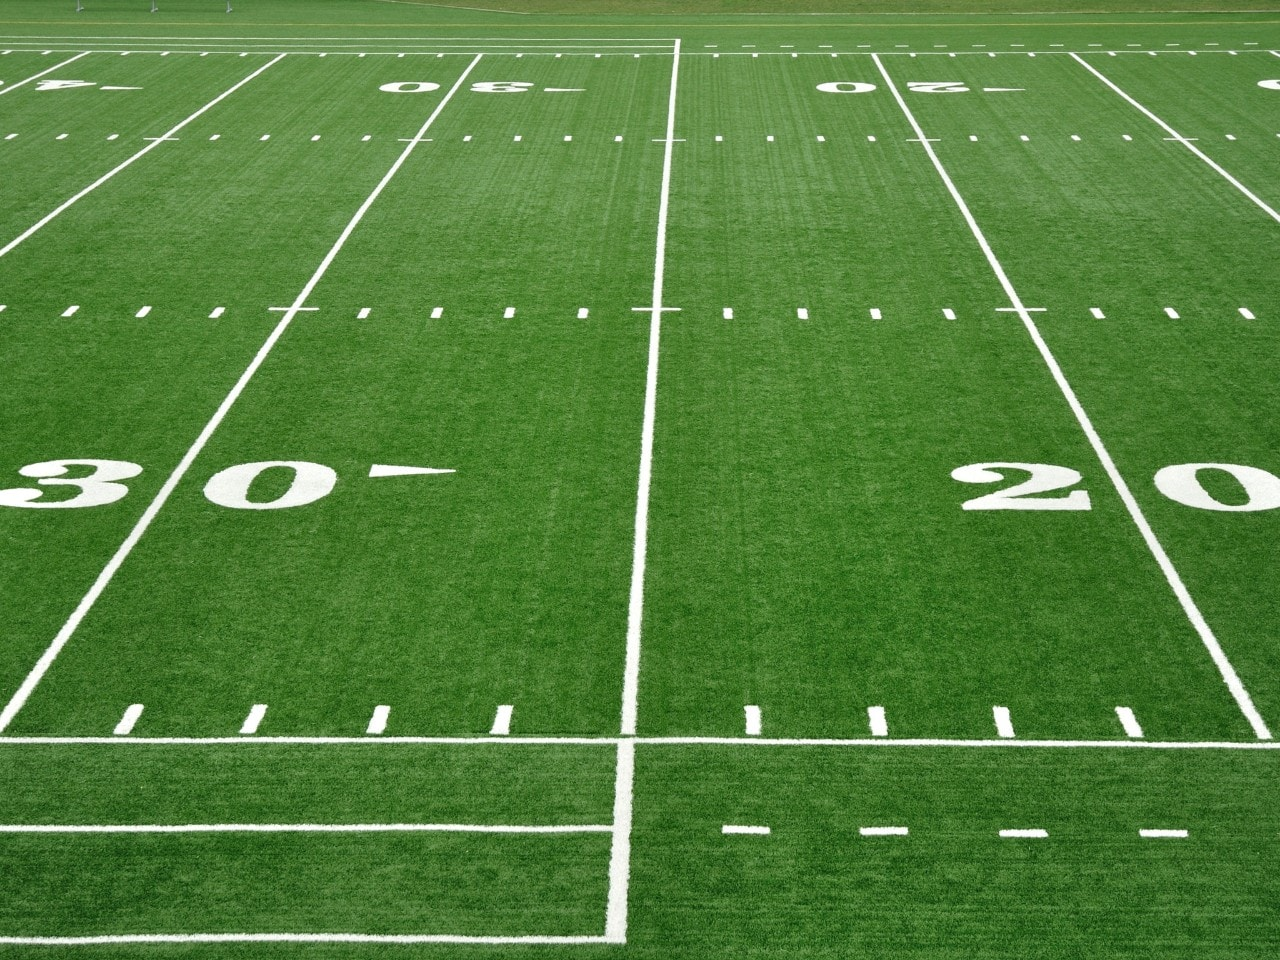 Twenty and Thirty Yard Line on American Football Field